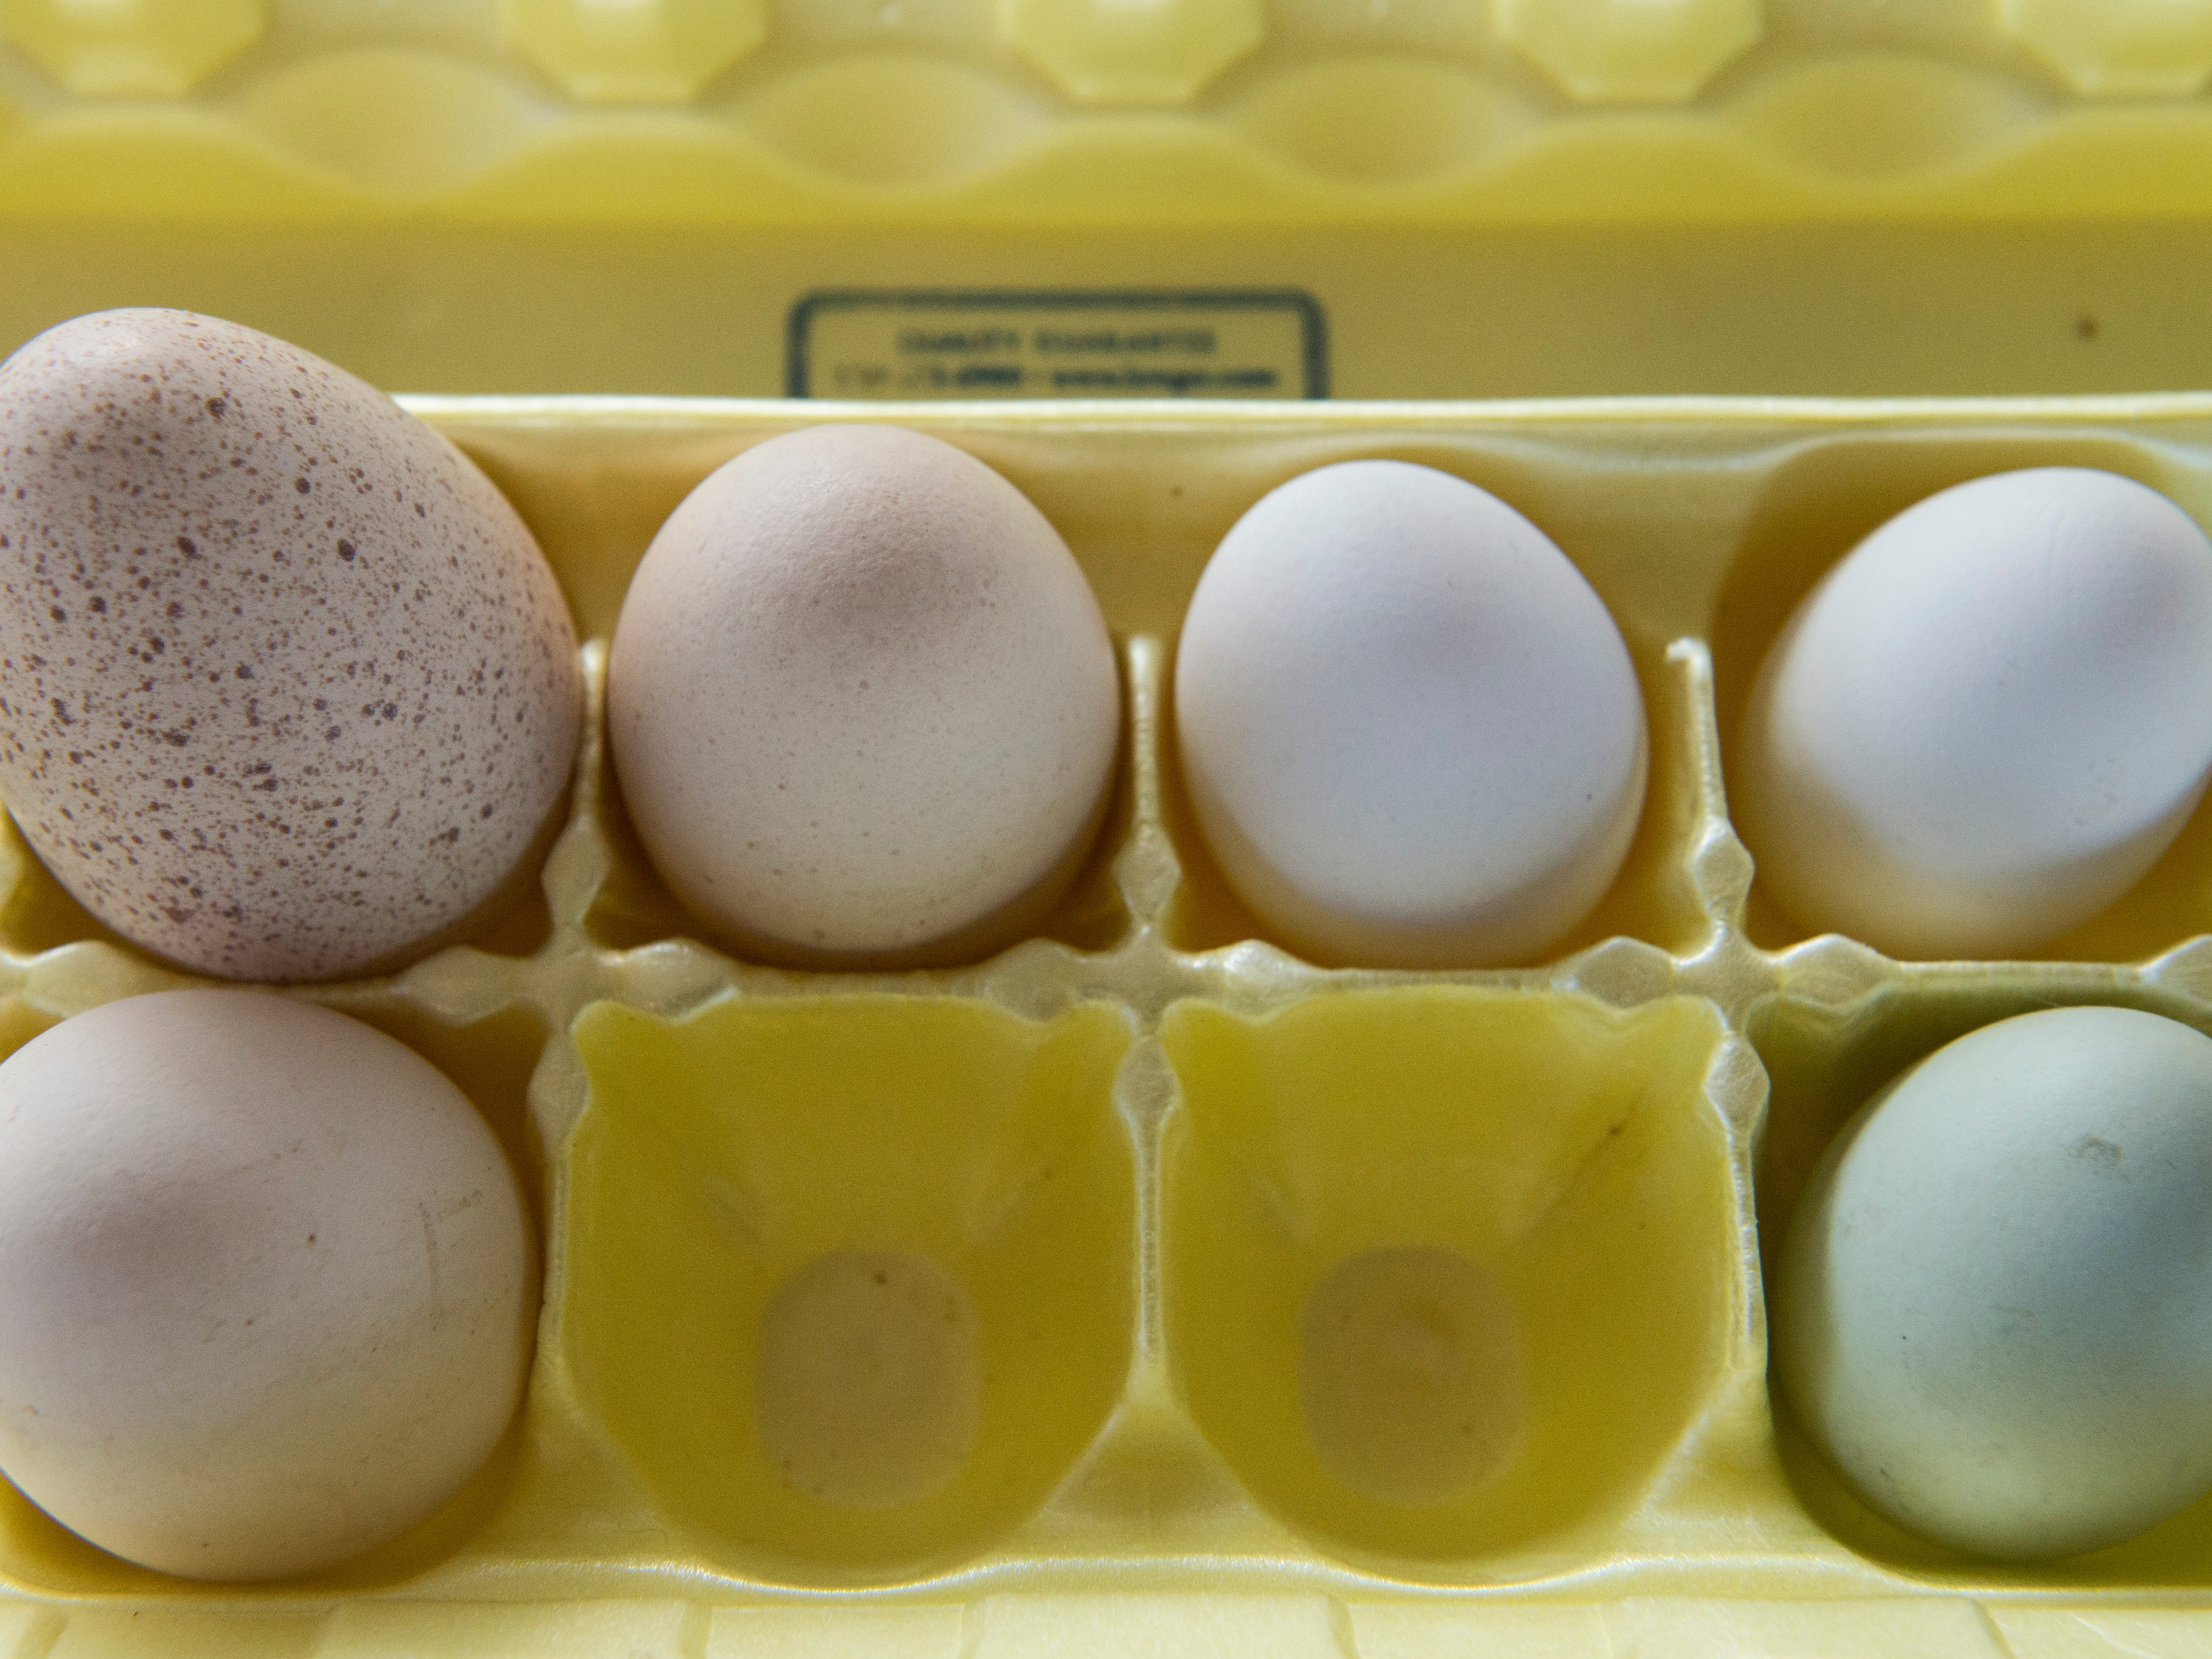 From left: A turkey egg, Bantam chicken eggs and Ameraucana chicken eggs are displayed for testing purposes during the Small Animal Showman of Showmen Contest at the Ross County Fair on August 9, 2018 in Chillicothe, Ohio.